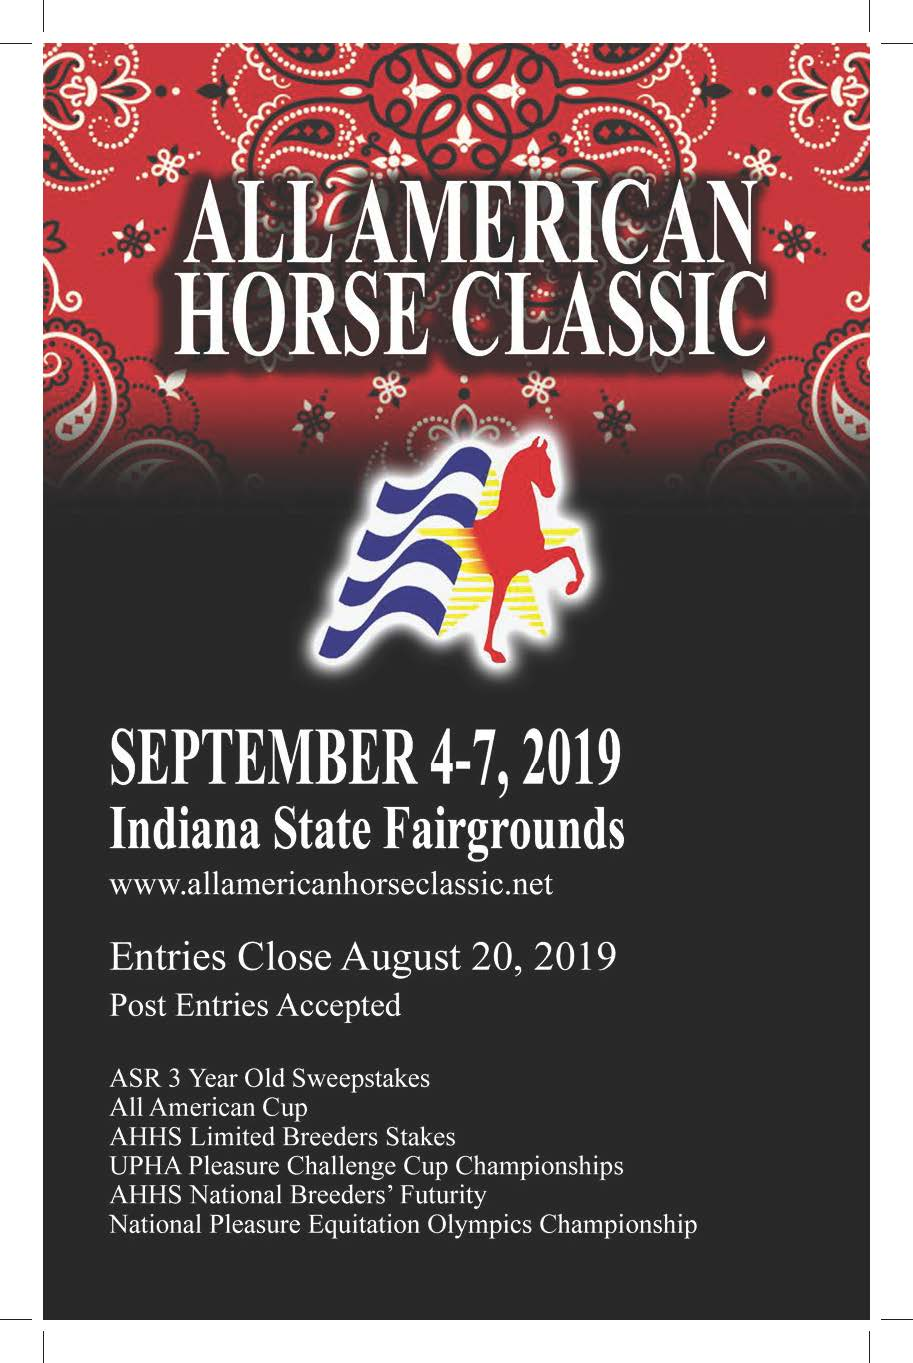 All American Horse Classic | Indiana State Fairgrounds